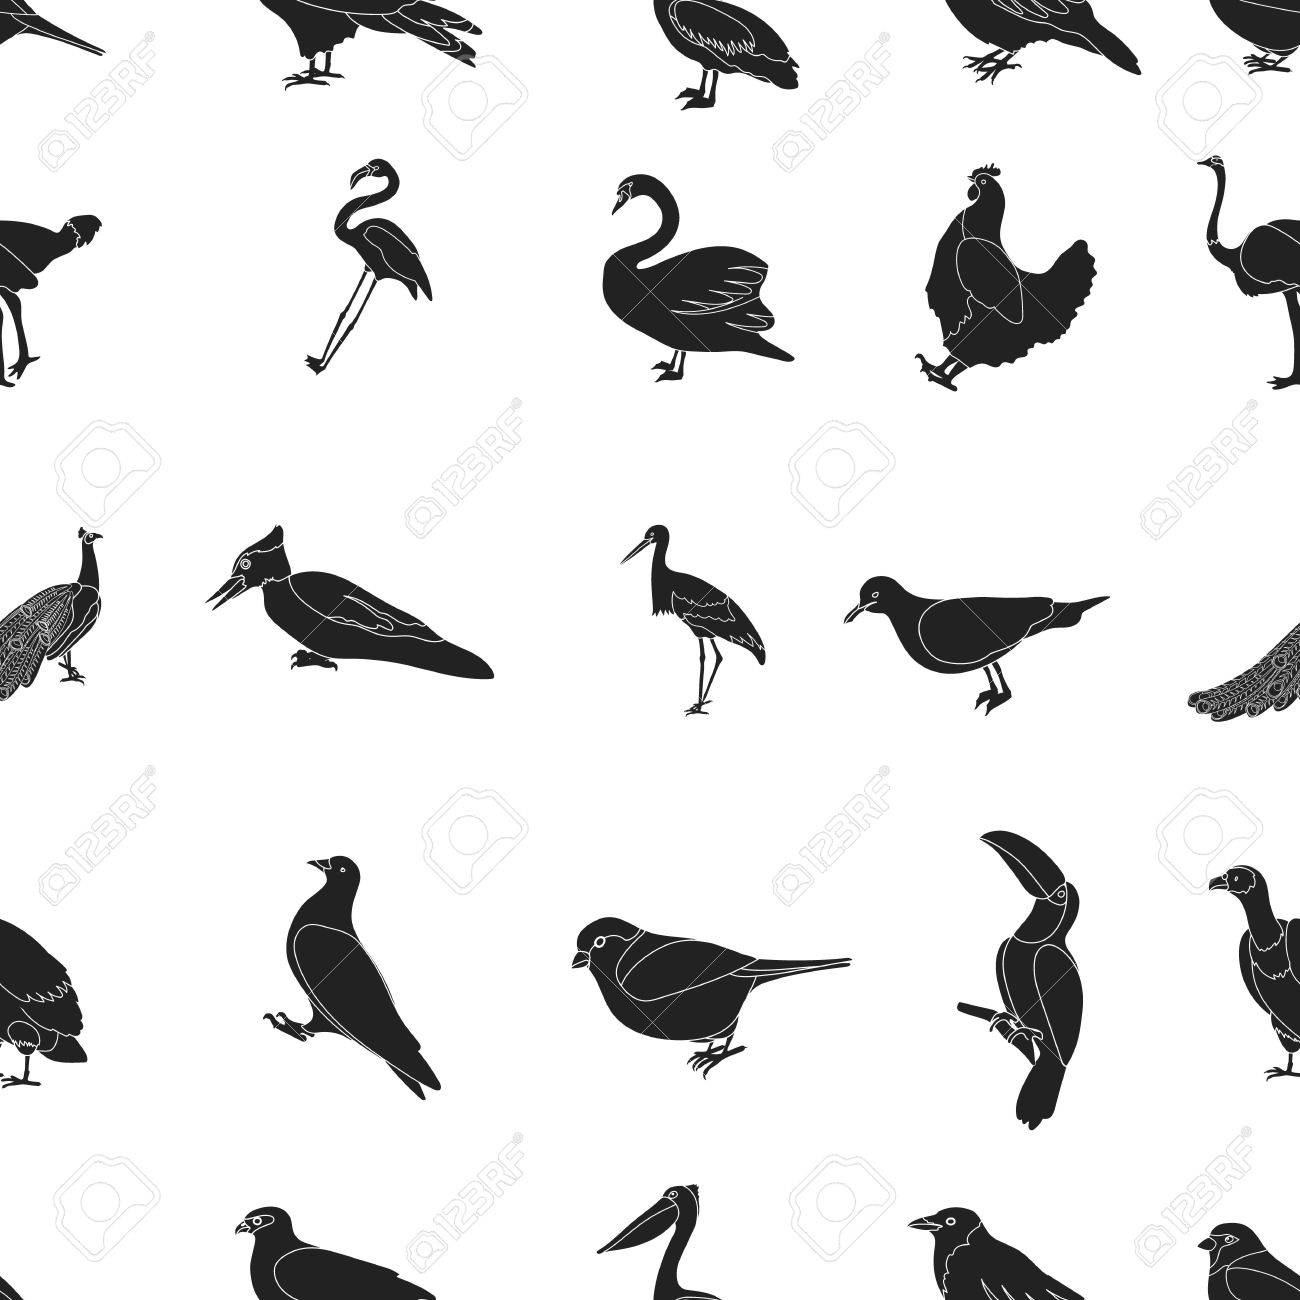 bird pattern icons in black style big collection of bird vector